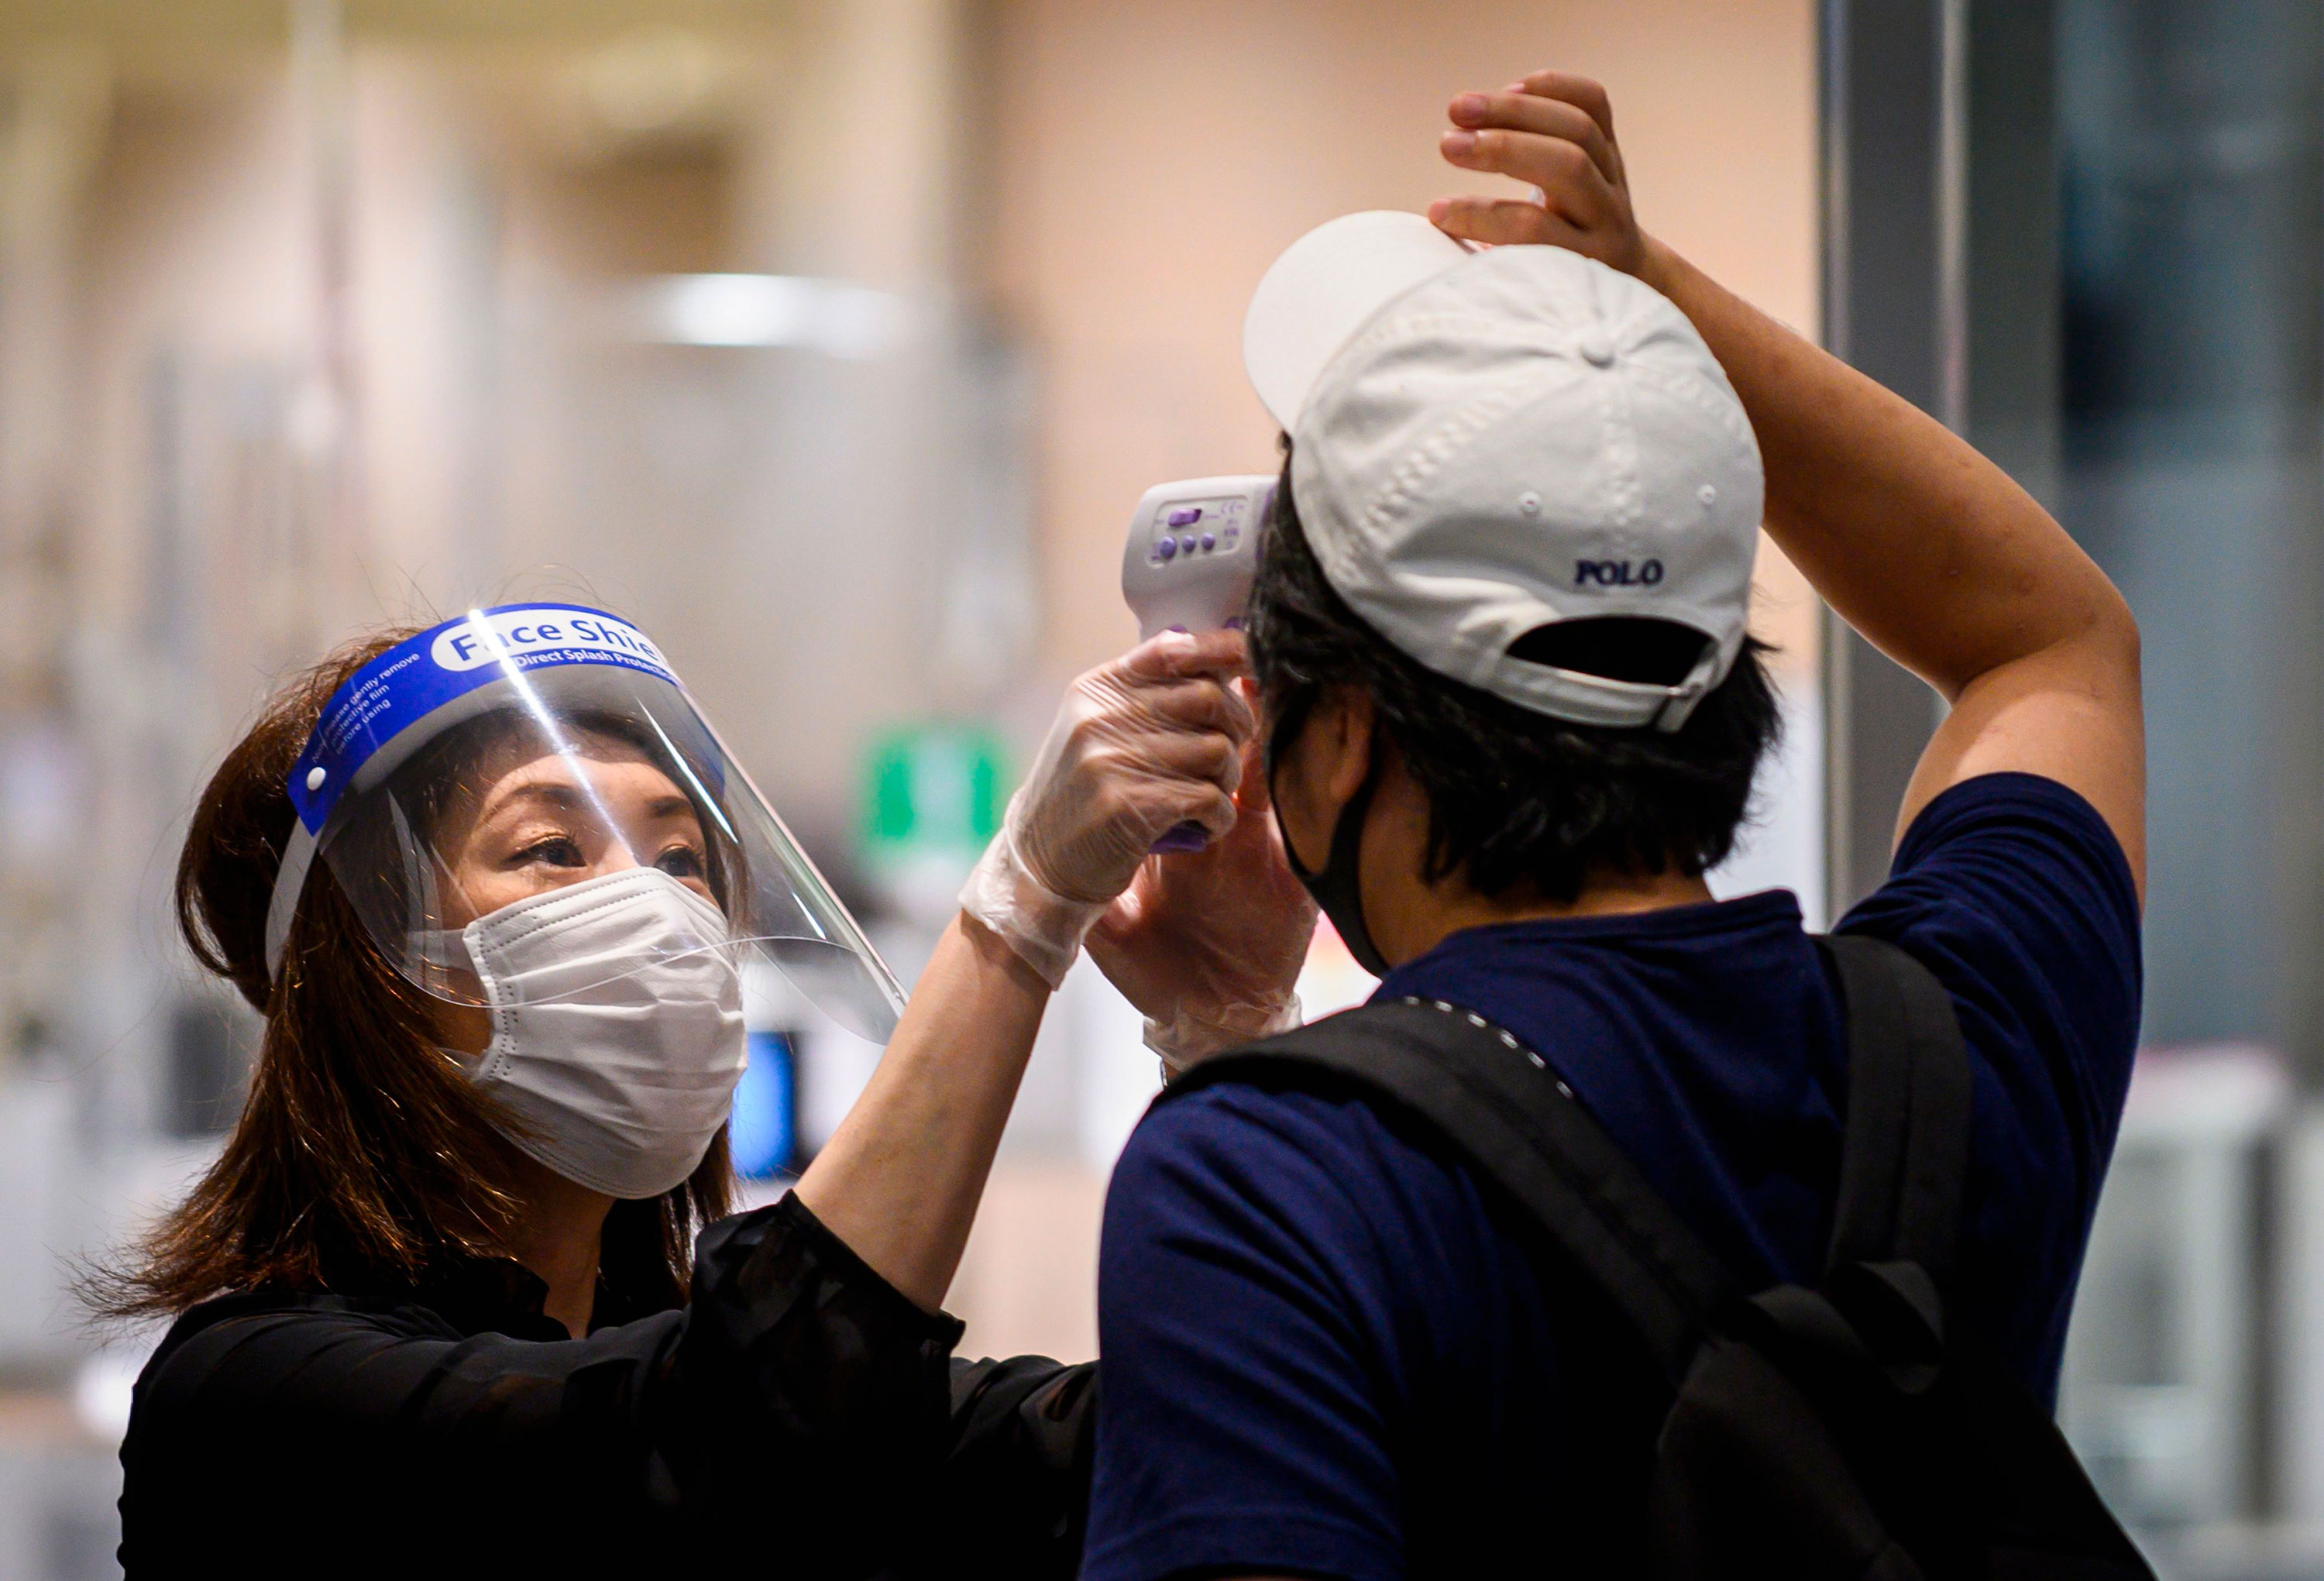 An employee conducts a temperature check on a customer at the entrance of the Shibuya Hikarie building on May 26 in Tokyo, Japan.